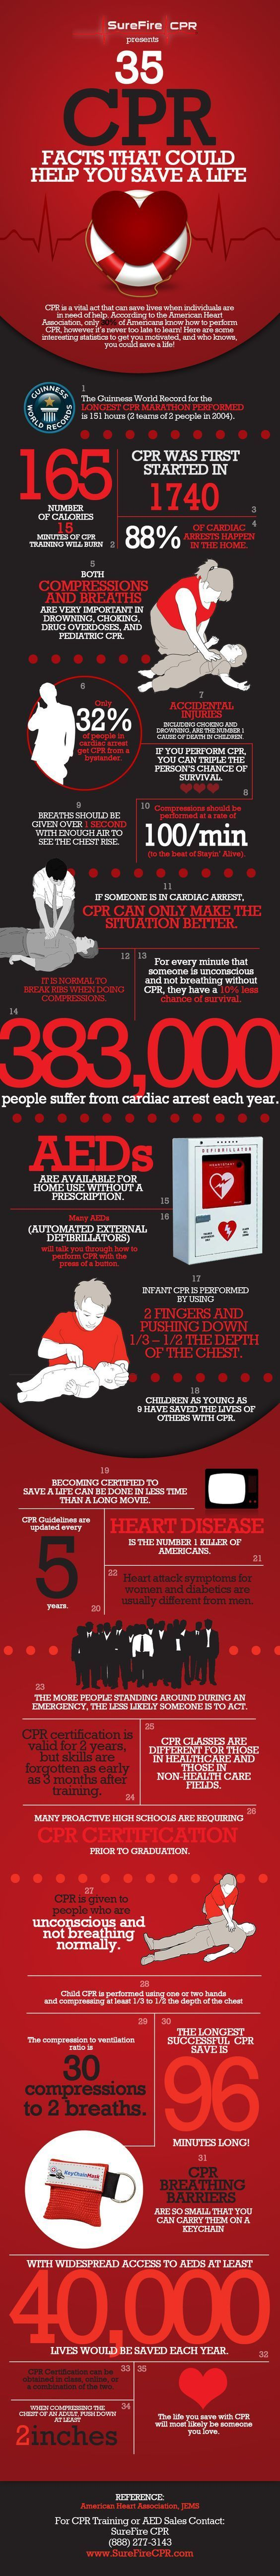 35 CPR Facts that Save Lives. Did you know that AEDs are available now for home use without a prescription? Use an AED with CPR to save lives. We cover this topic in our article here: http://insidefirstaid.com/emergencies/learn-how-to-perform-cpr-or-cardiopulmonary-resuscitation #cpr #training #aed Everything you needed to know about survival